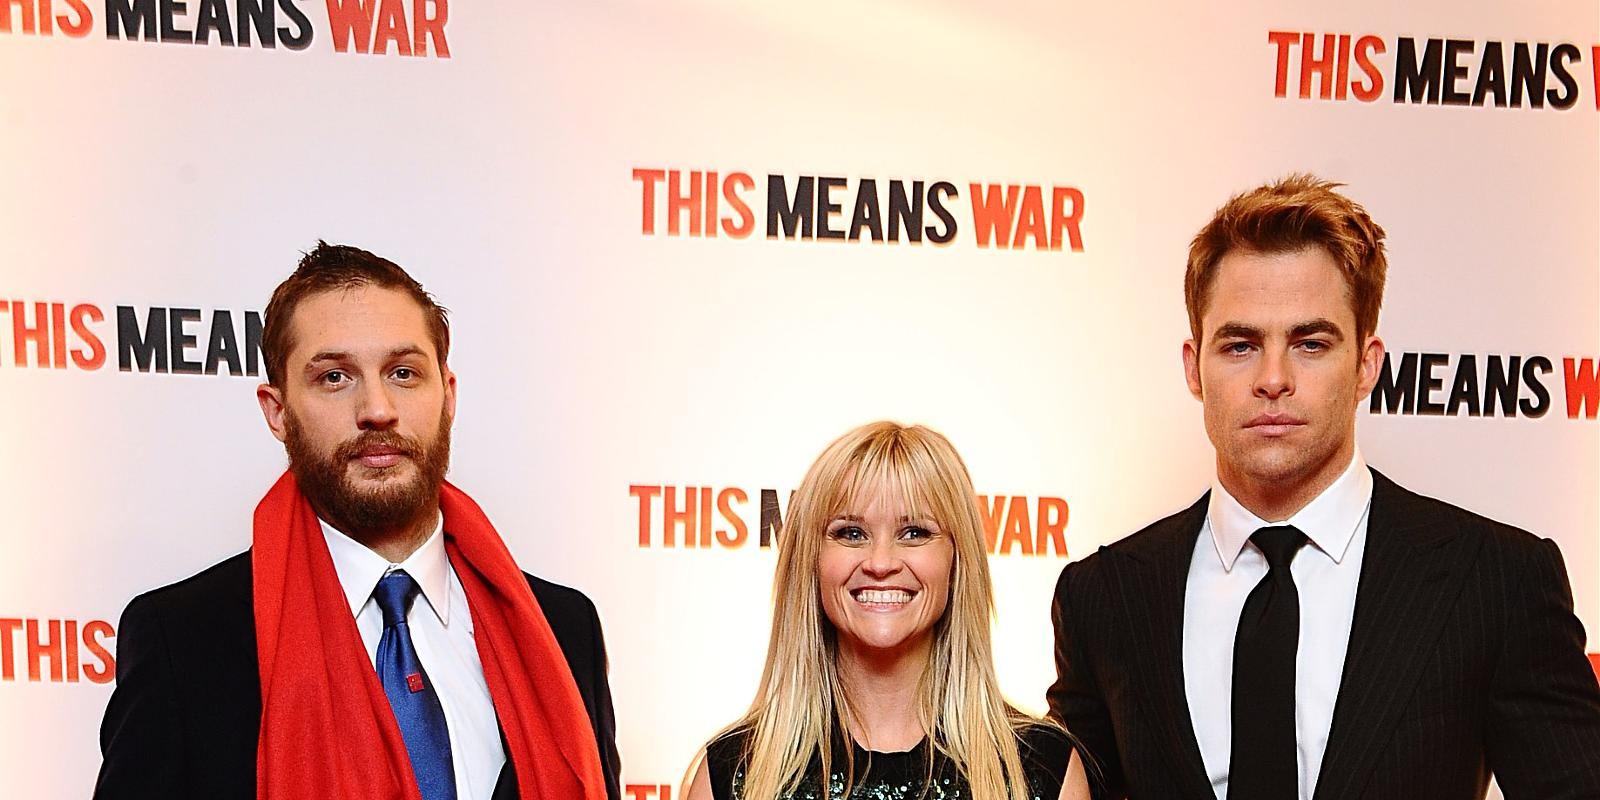 Amazing This Means War Pictures & Backgrounds